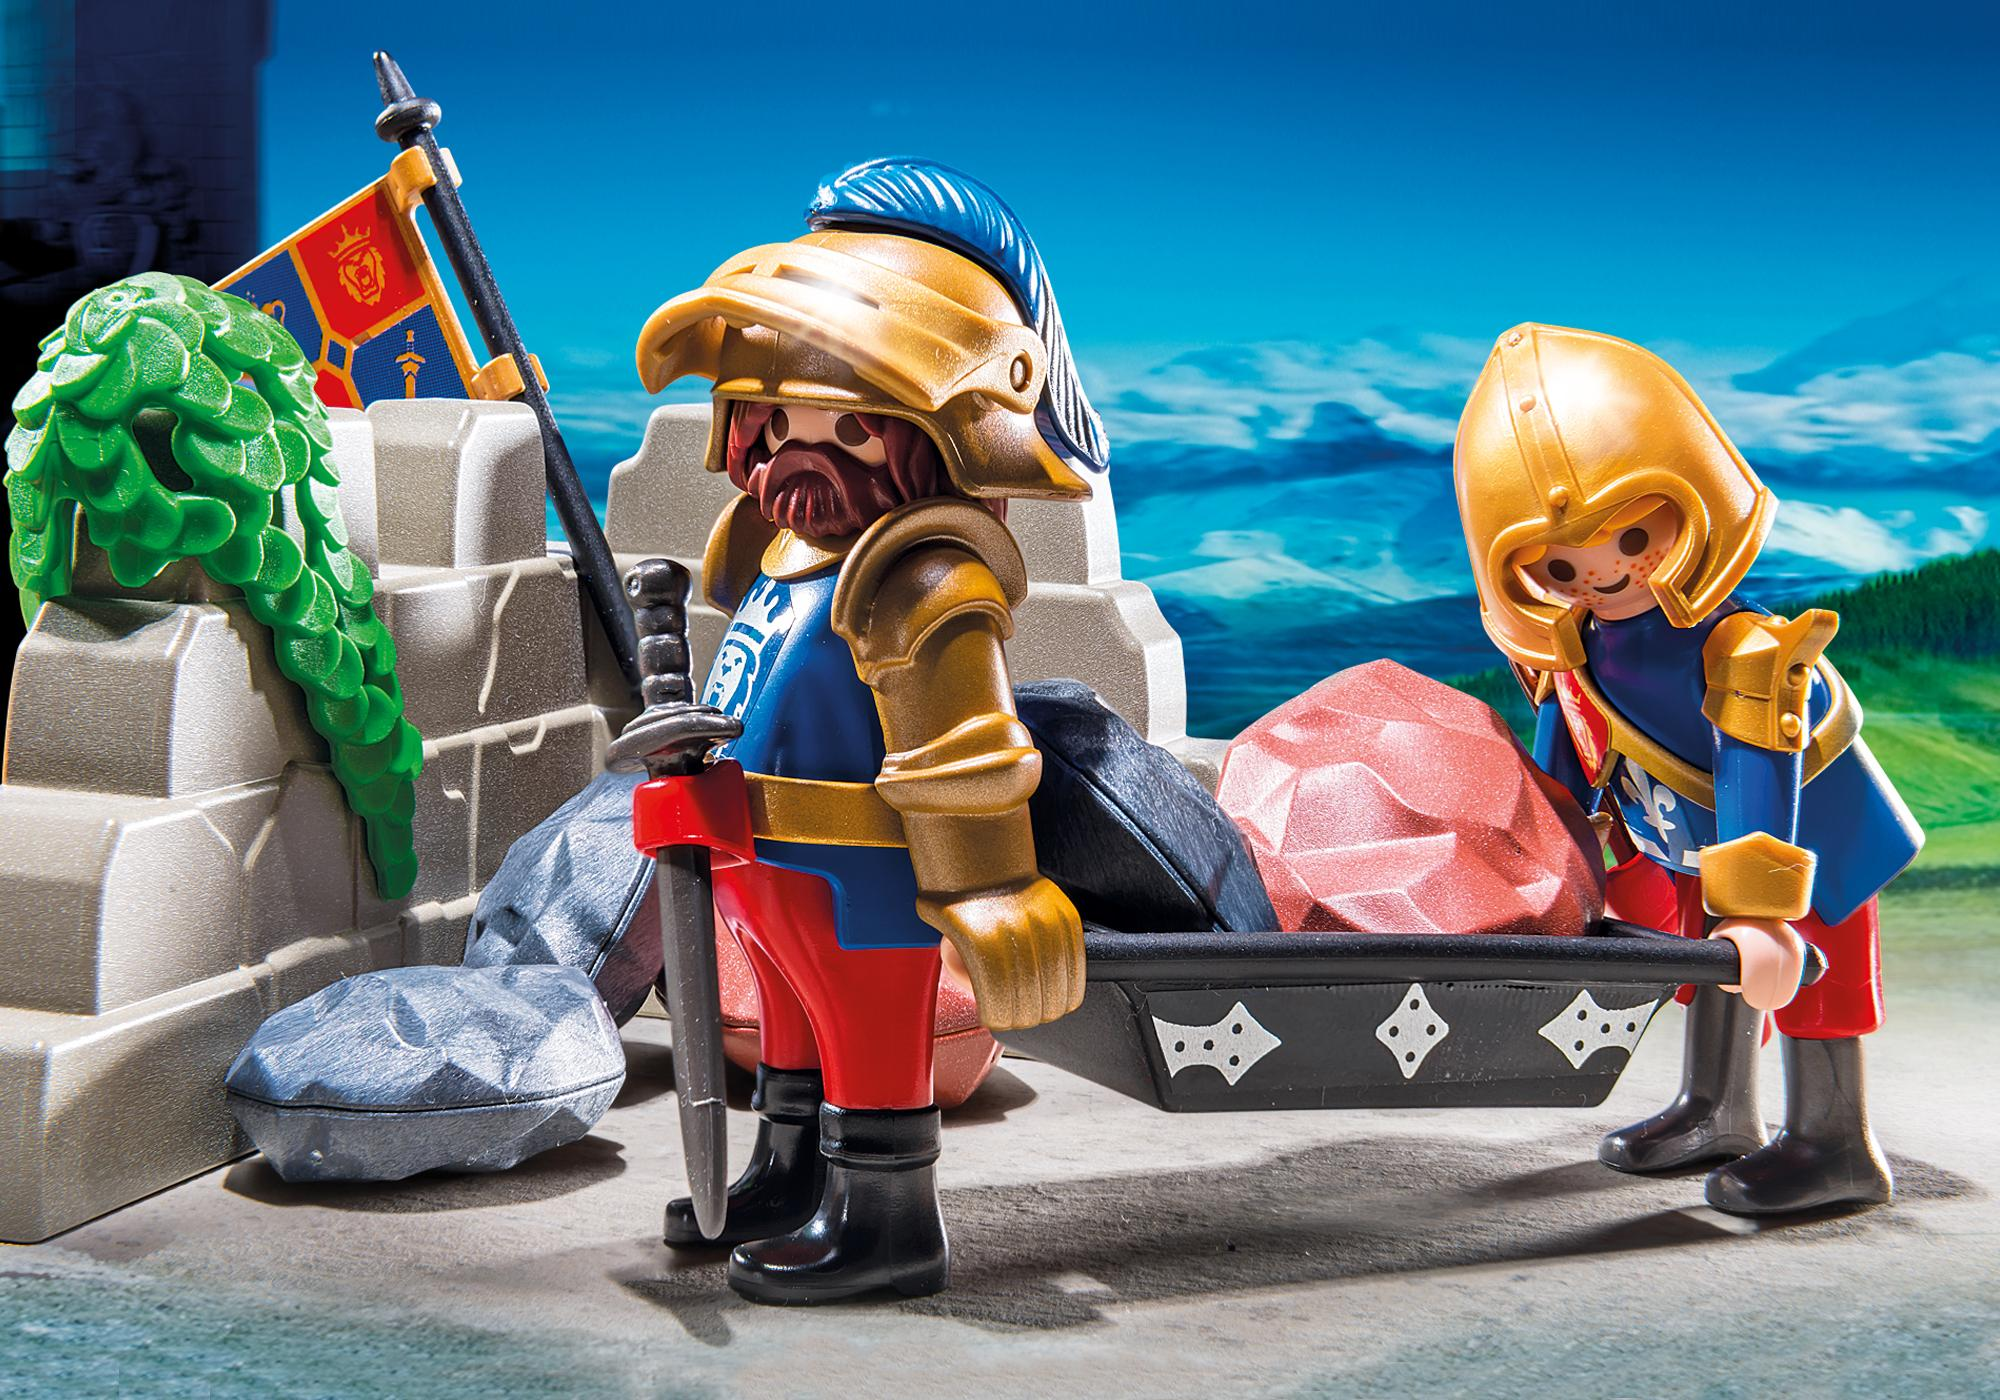 http://media.playmobil.com/i/playmobil/6039_product_extra2/Рыцари: Катапульта Рыцарей Льва